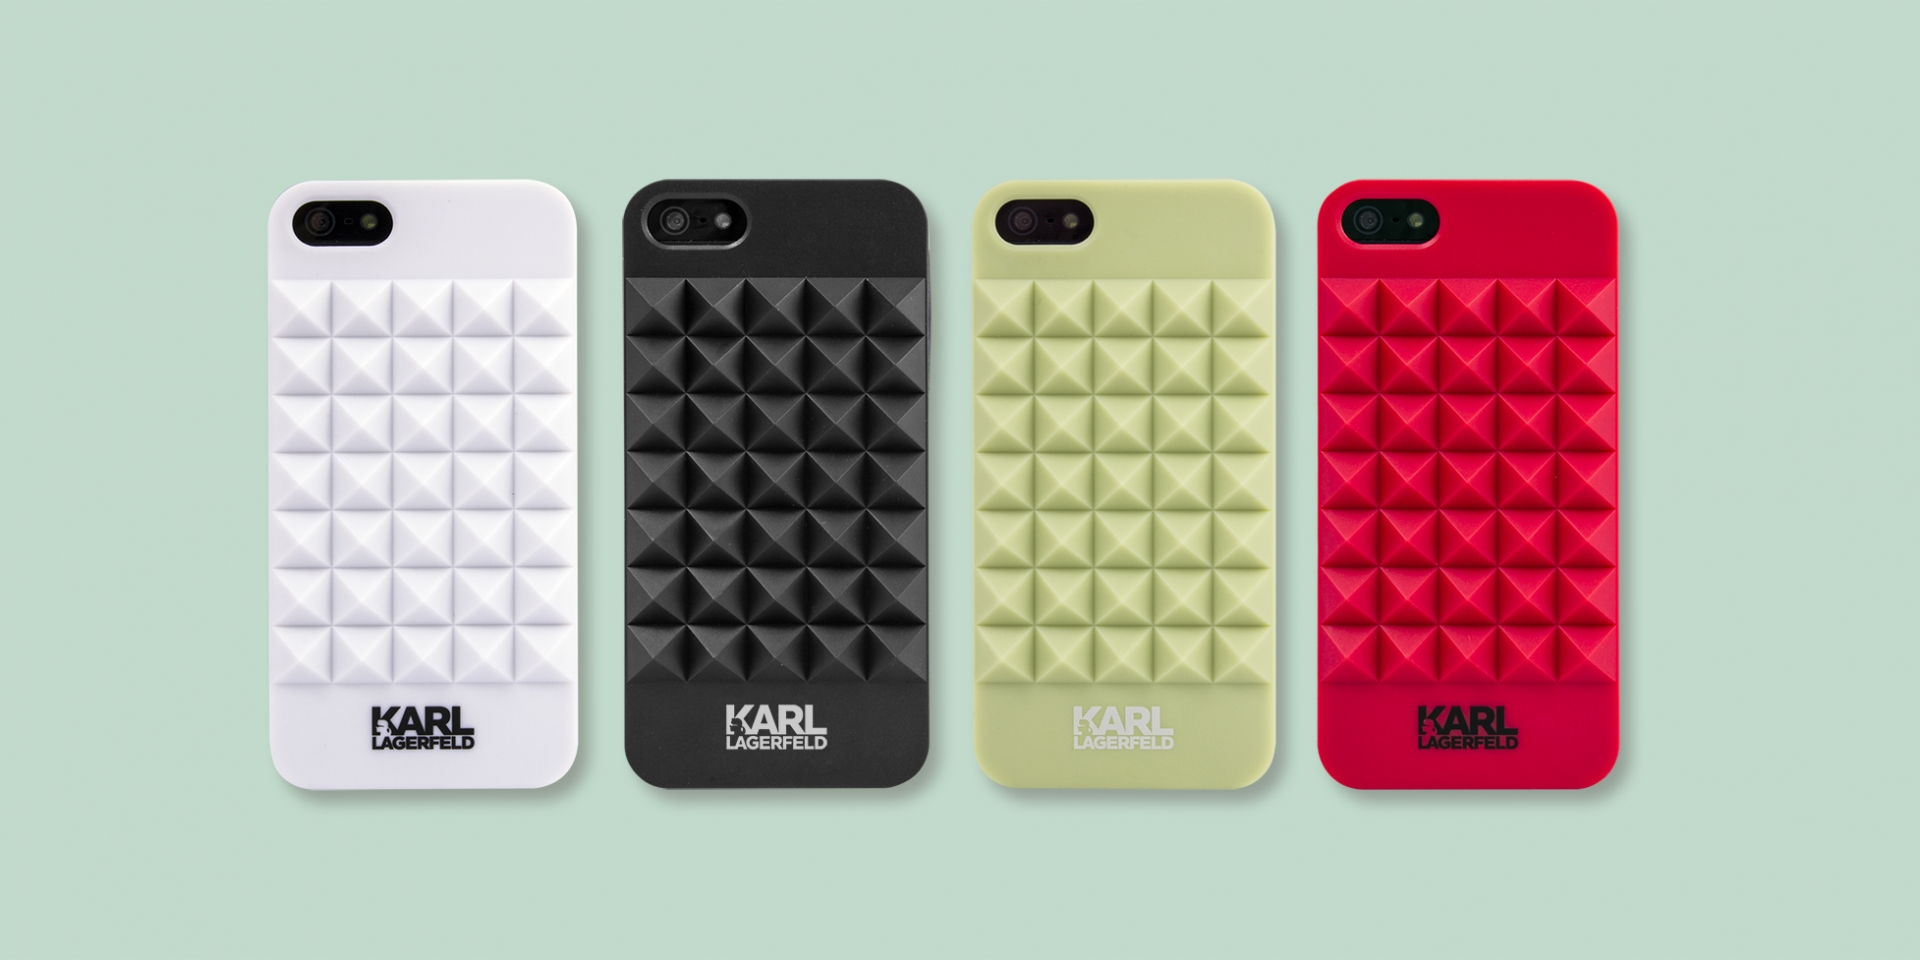 KARL LAGERFELD'S PHONE CASE PRESENTATION